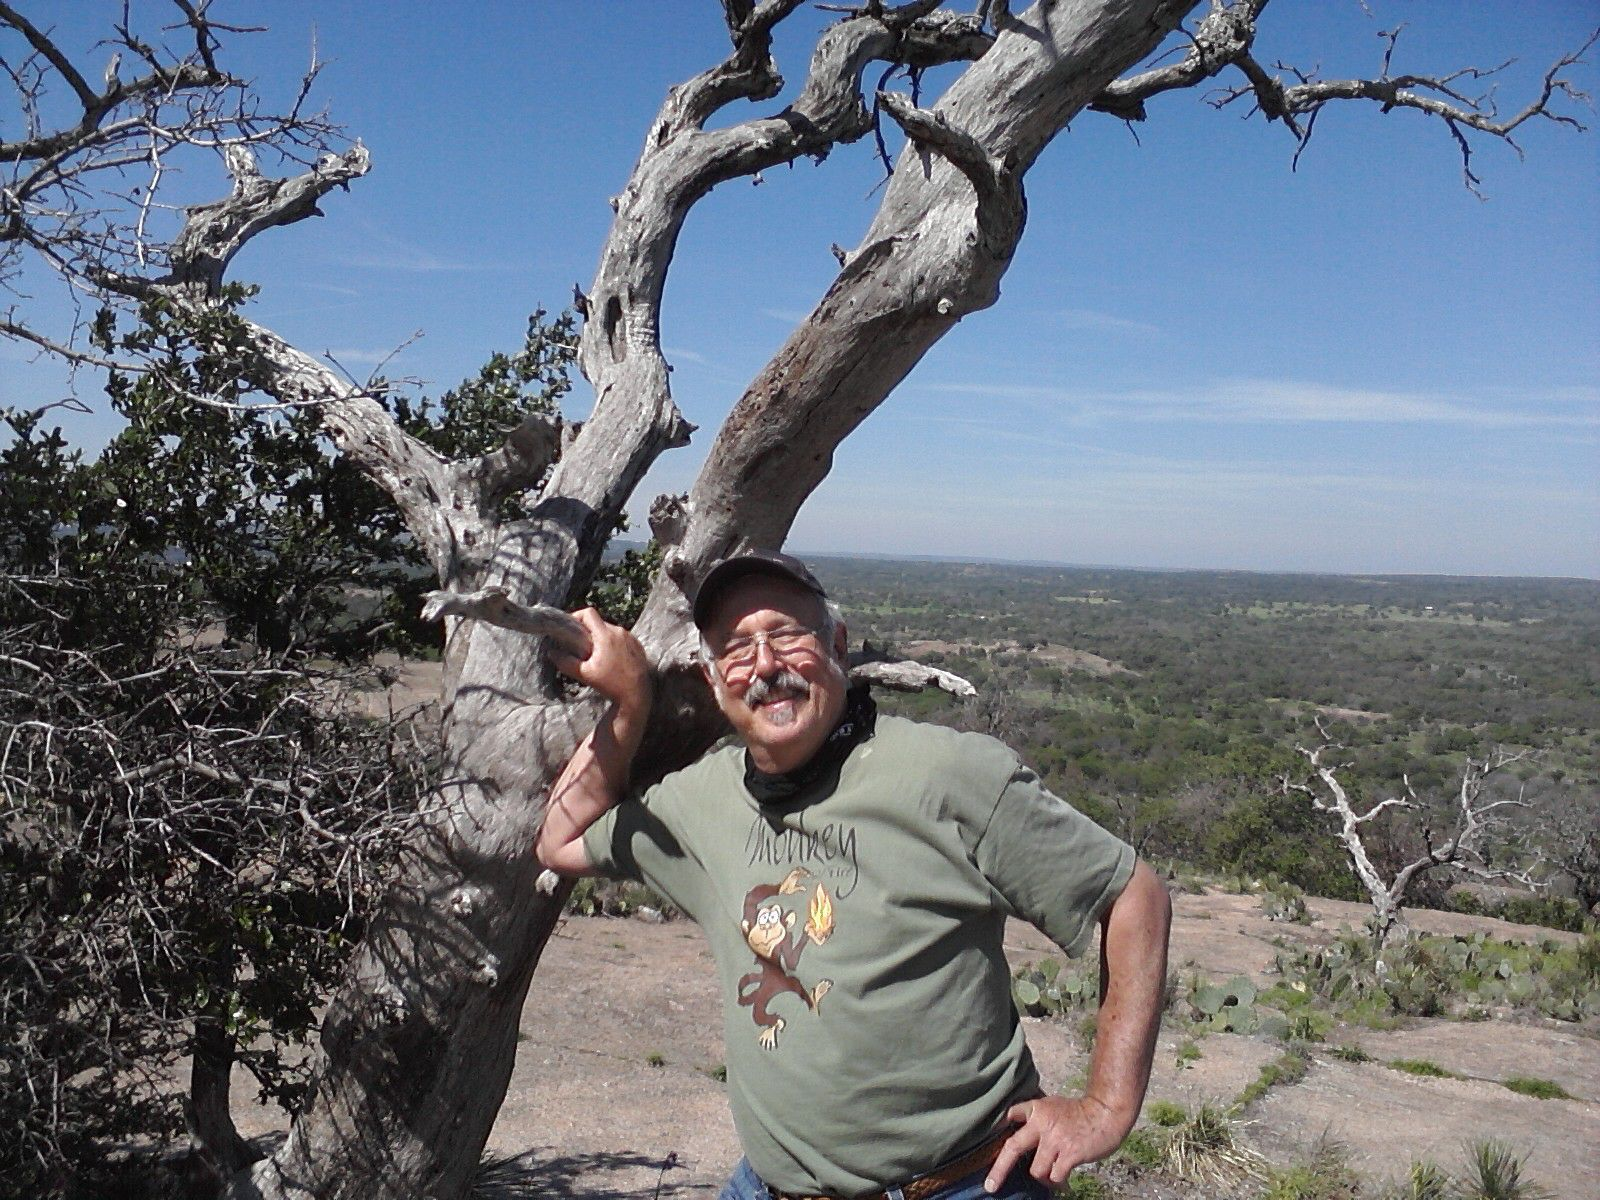 """Don Mathis at the Rock. """"The age of the climber is porportional to the apparent height of the dome."""" Photos courtesy of Don Mathis."""